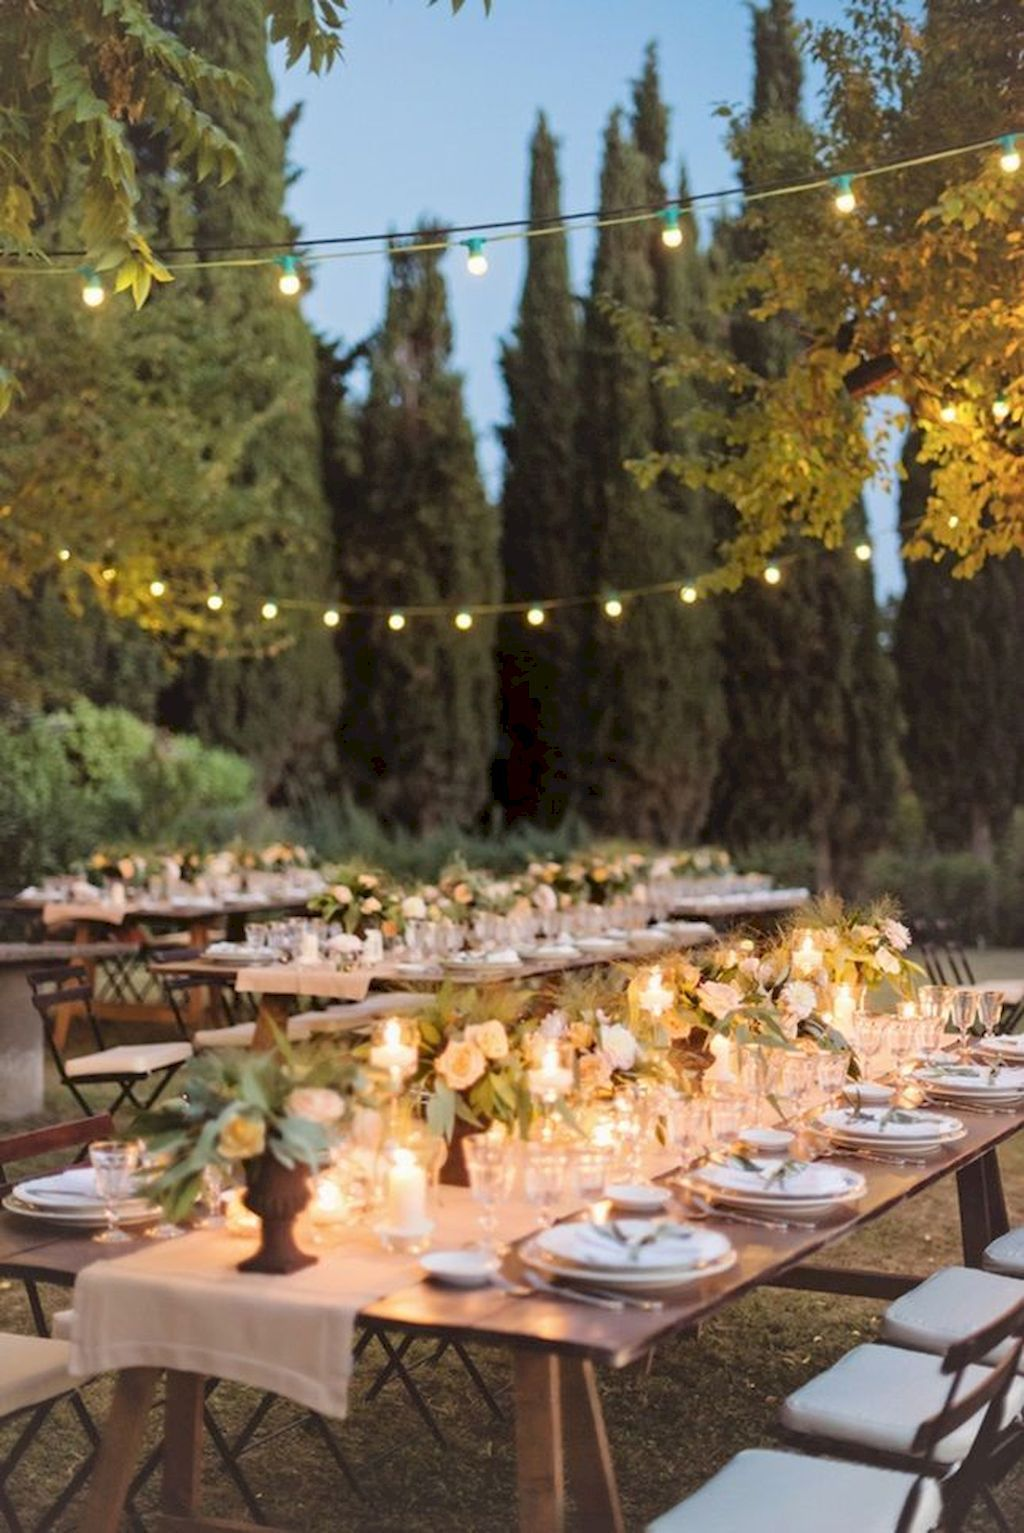 How to Decorate a Wedding Outdoor Decor Ideas on a Budget ...